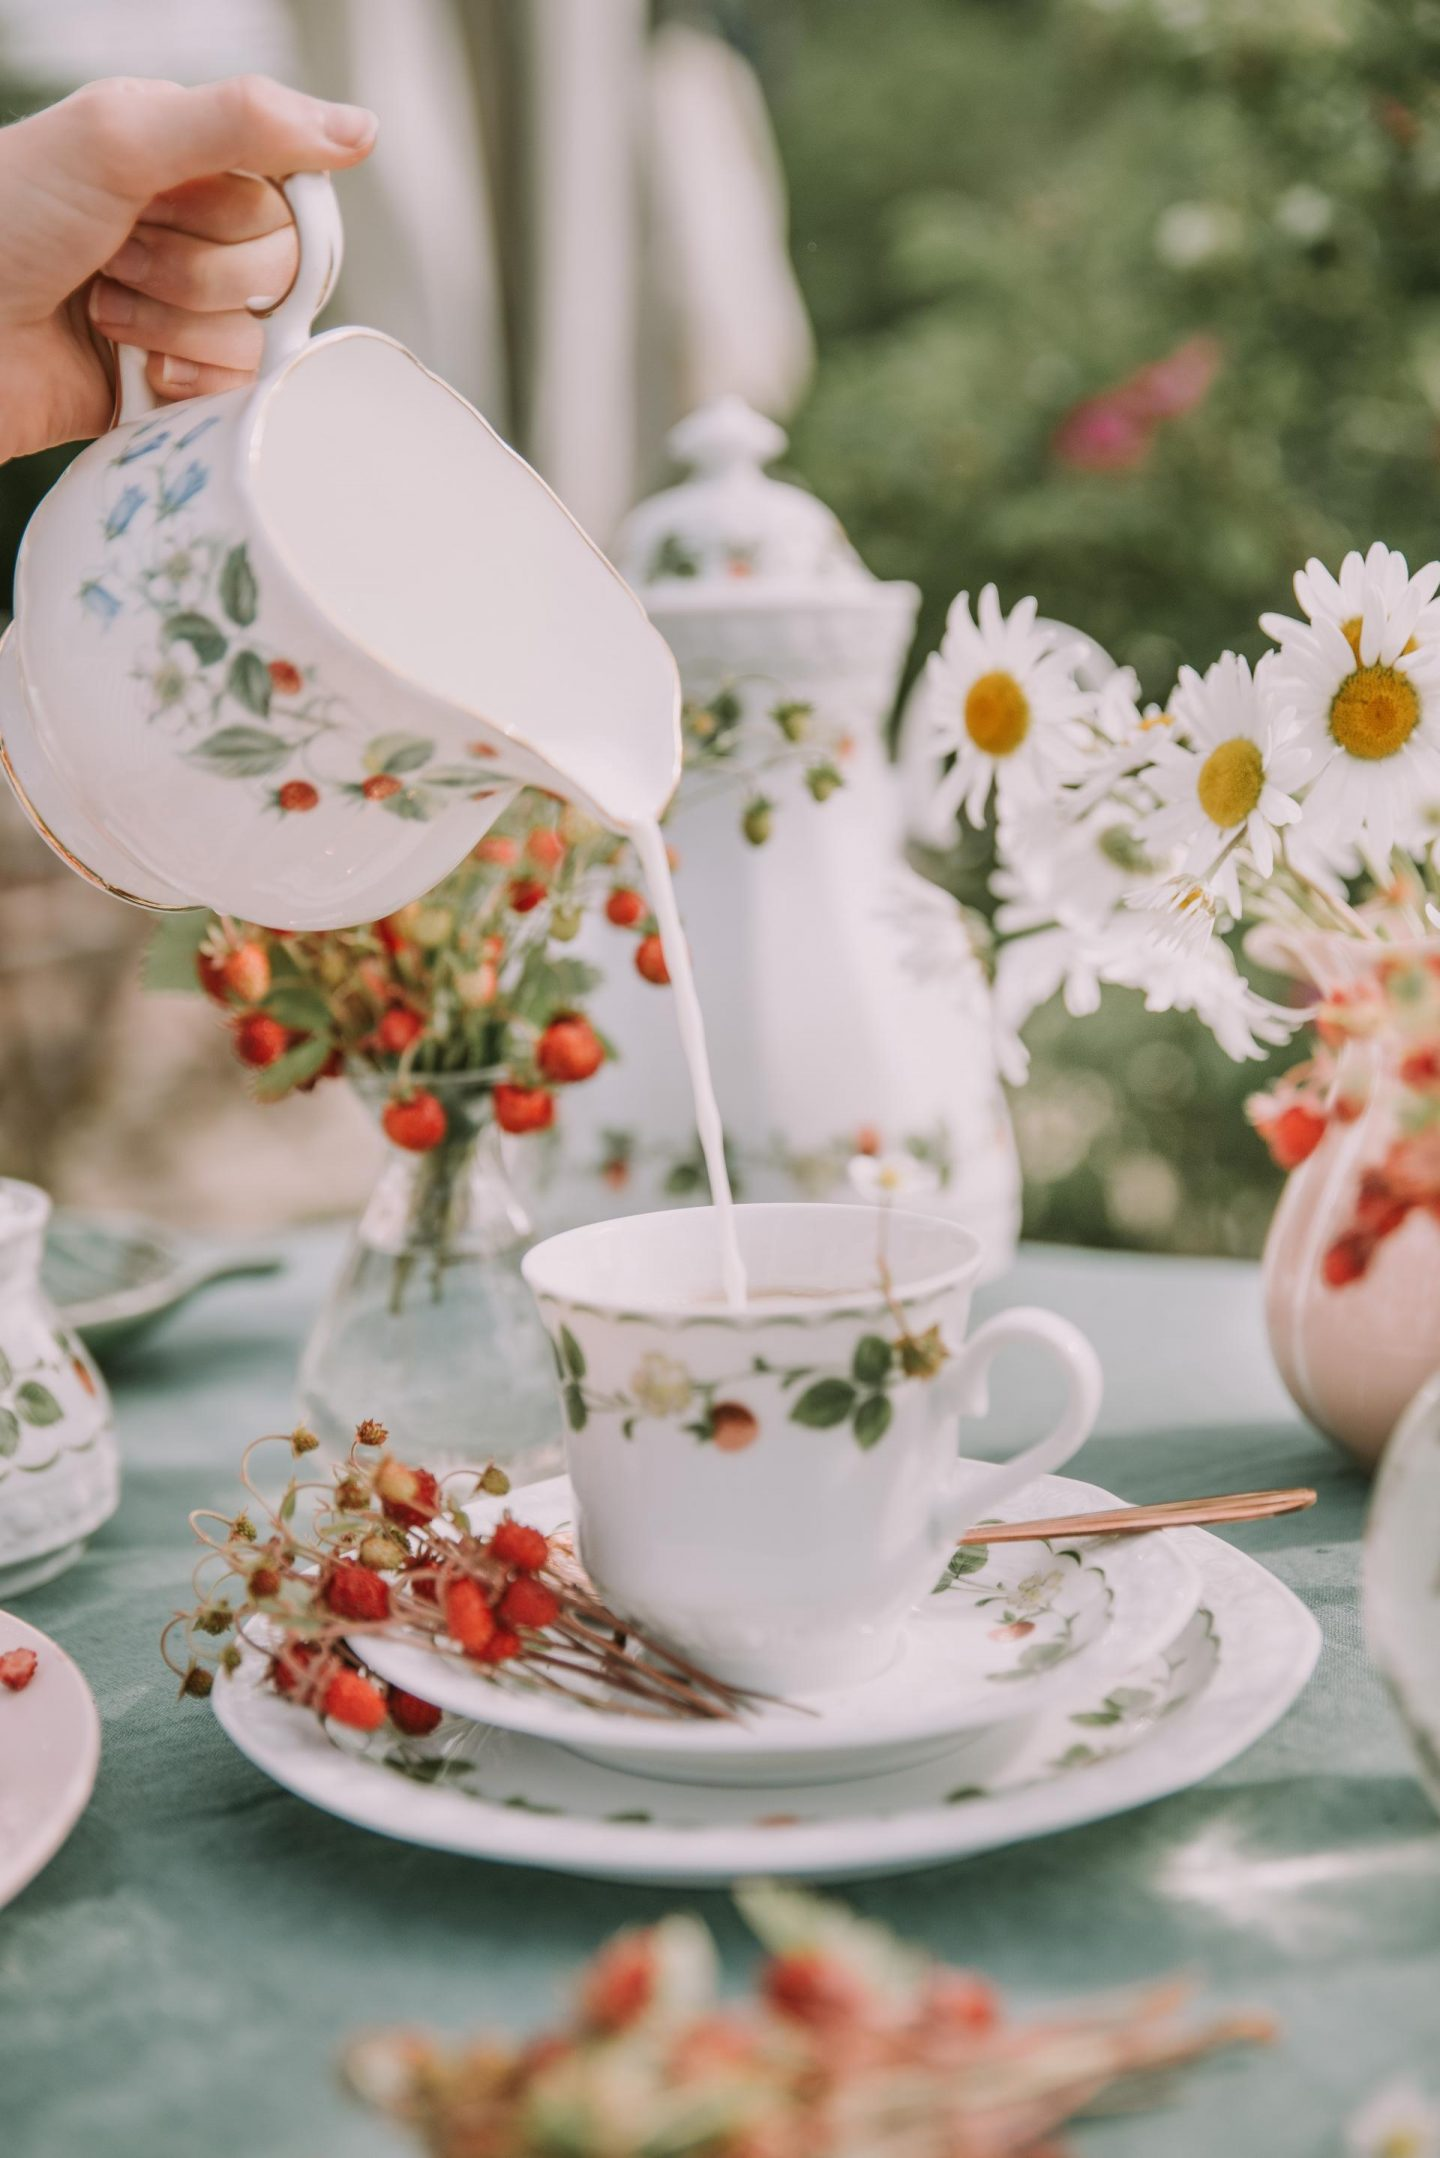 Celebrating Afternoon Tea Week with Red Letter Days